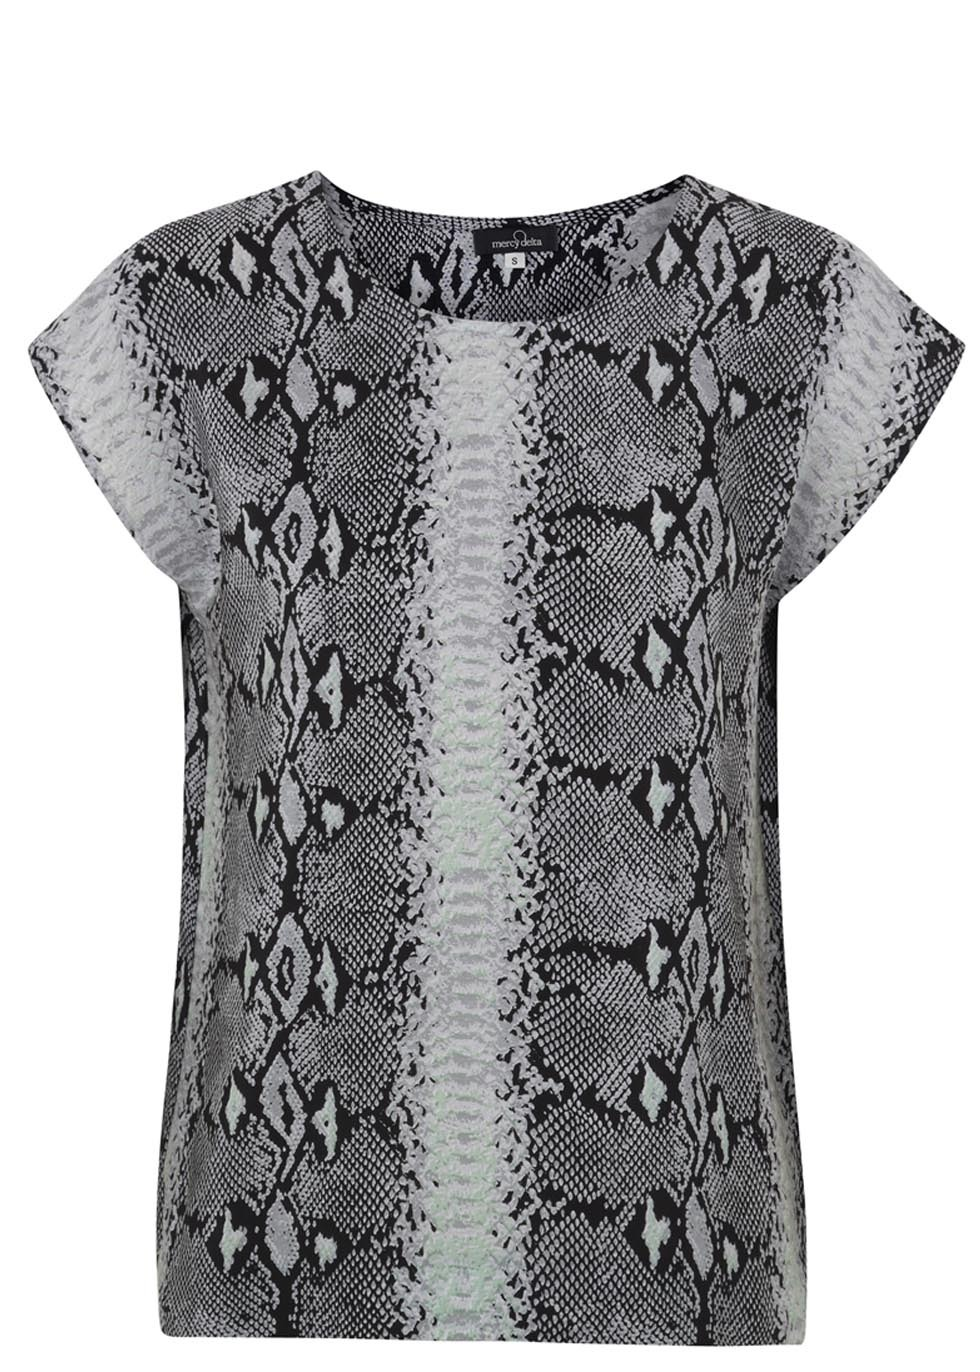 Blair Grey Print Silk Top - neckline: round neck; style: t-shirt; predominant colour: charcoal; secondary colour: mid grey; occasions: casual, creative work; length: standard; fibres: silk - 100%; fit: straight cut; sleeve length: short sleeve; sleeve style: standard; texture group: silky - light; pattern type: fabric; pattern: animal print; trends: world traveller; season: s/s 2014; pattern size: big & busy (top)